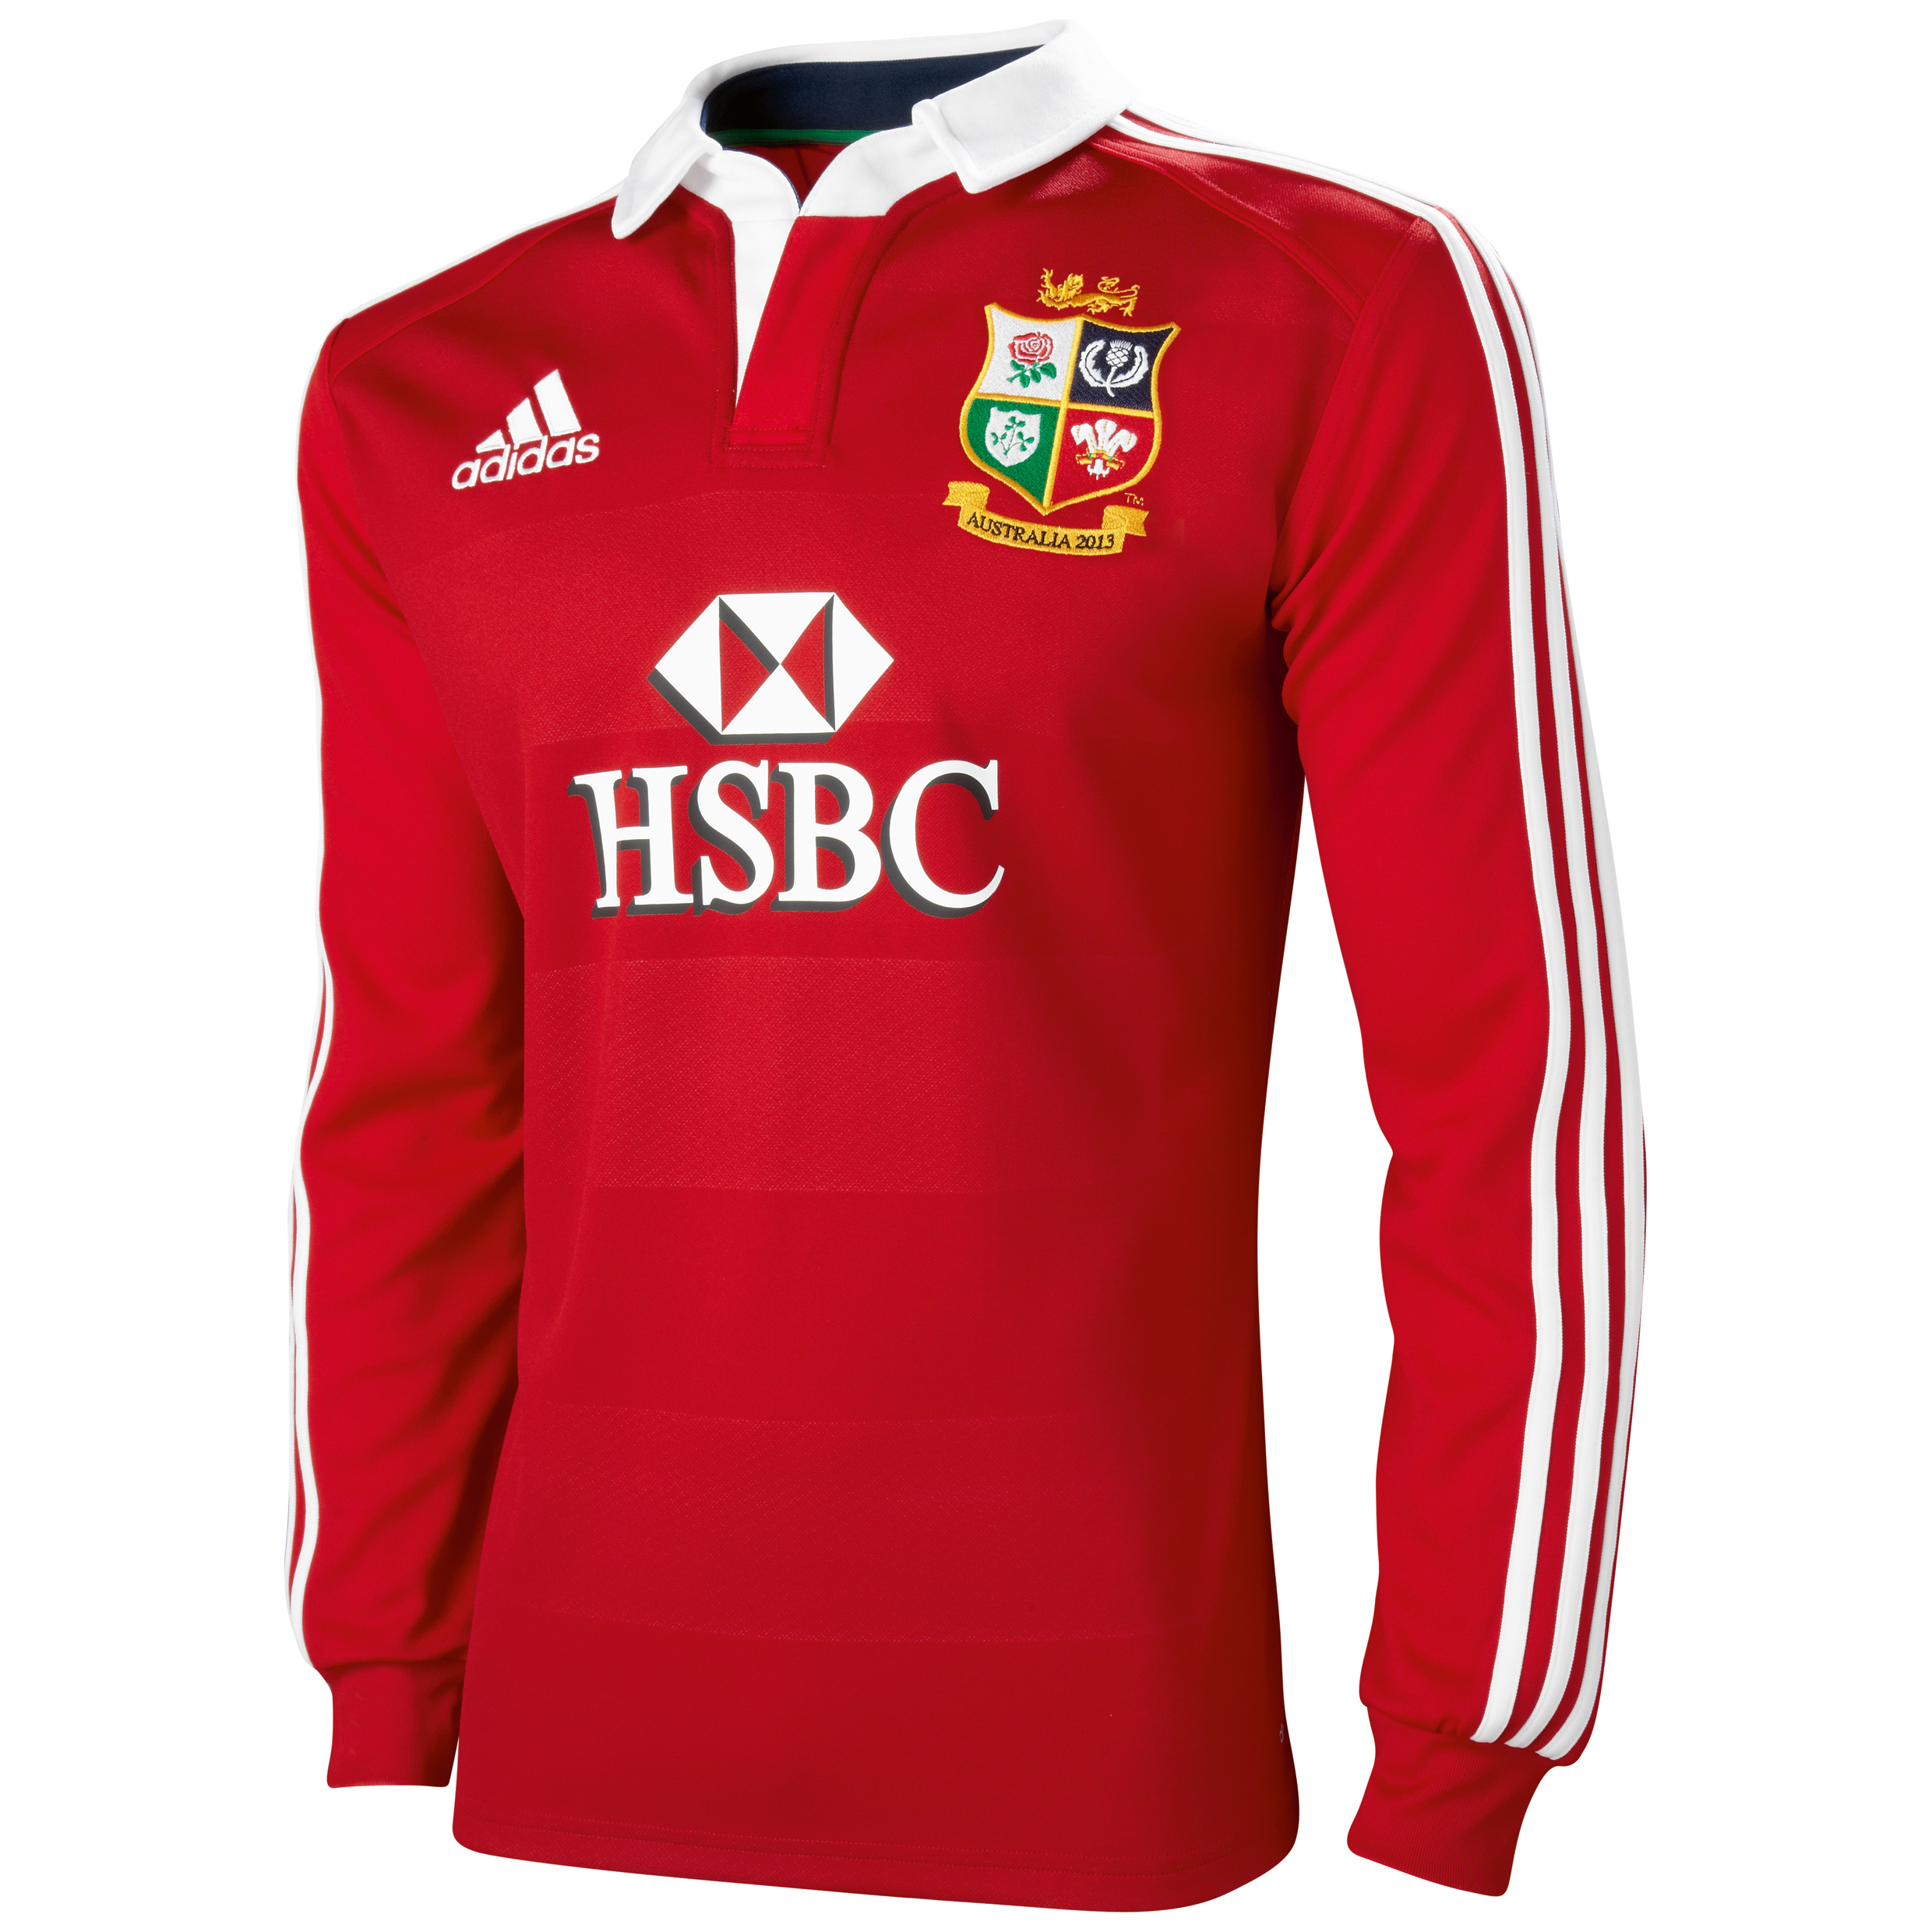 adidas British and Irish Lions Home Shirt 2013 - Long Sleeve